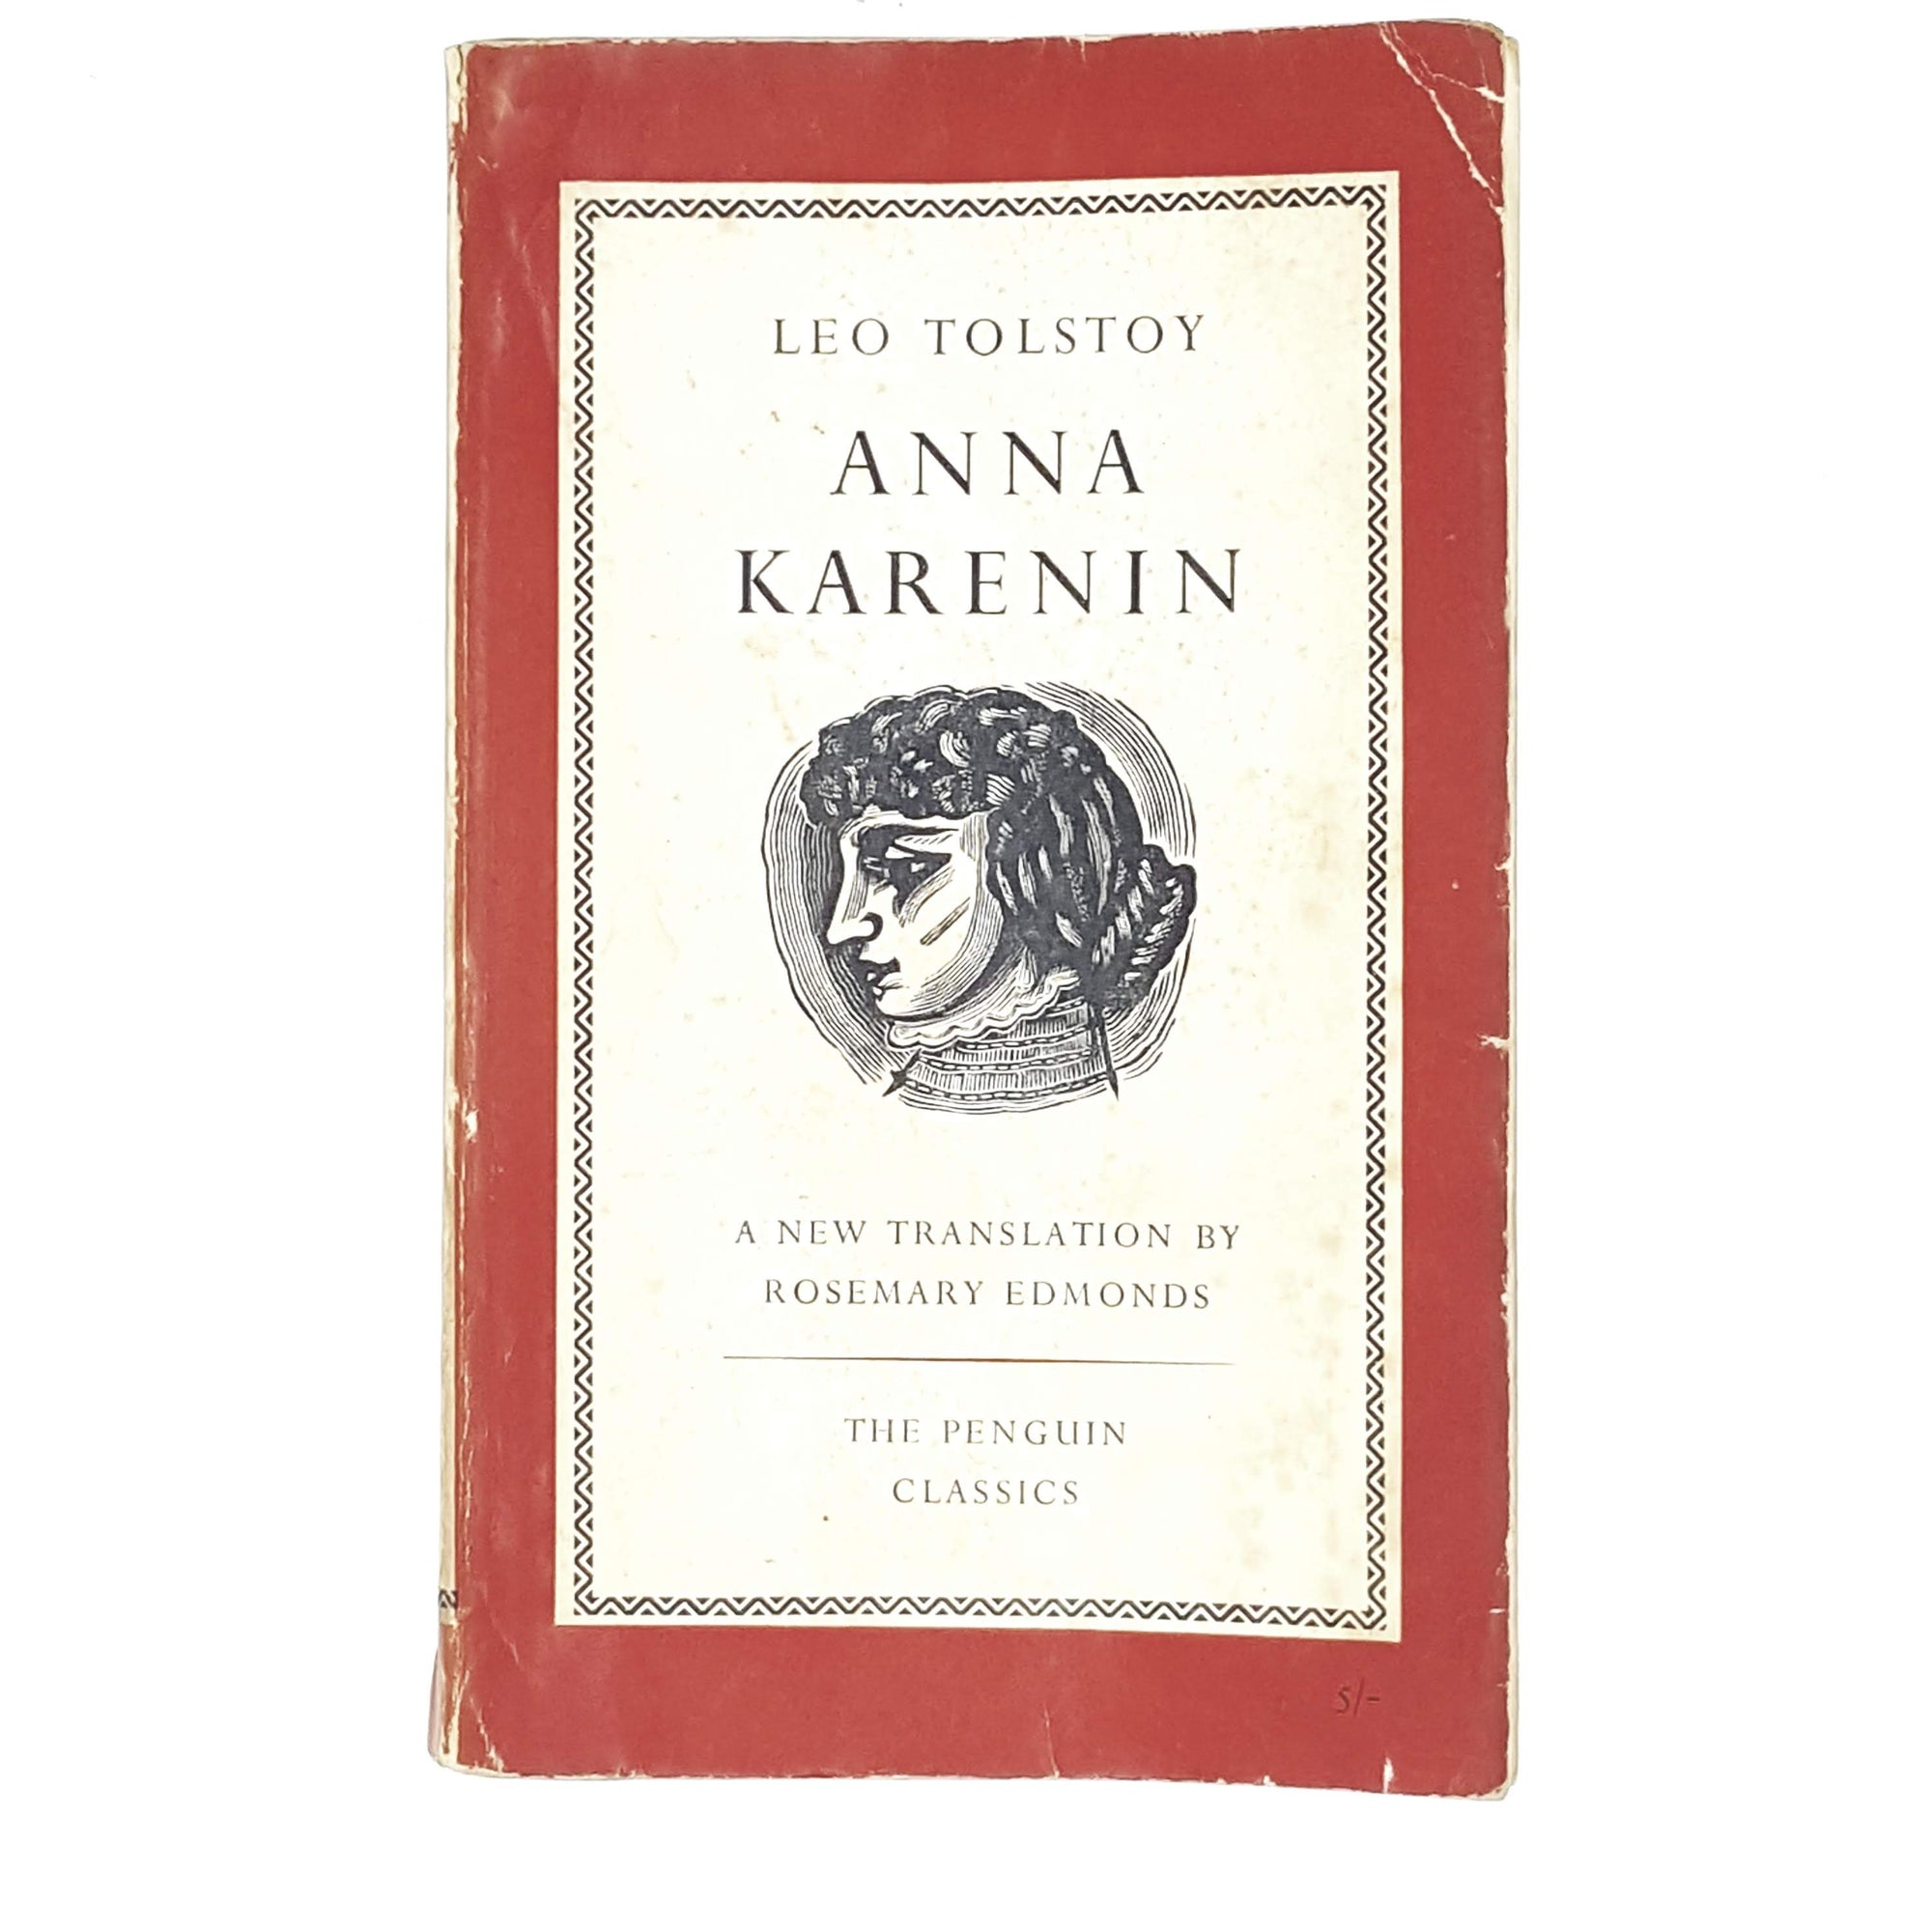 First Edition Tolstoy's Anna Karenin 1954